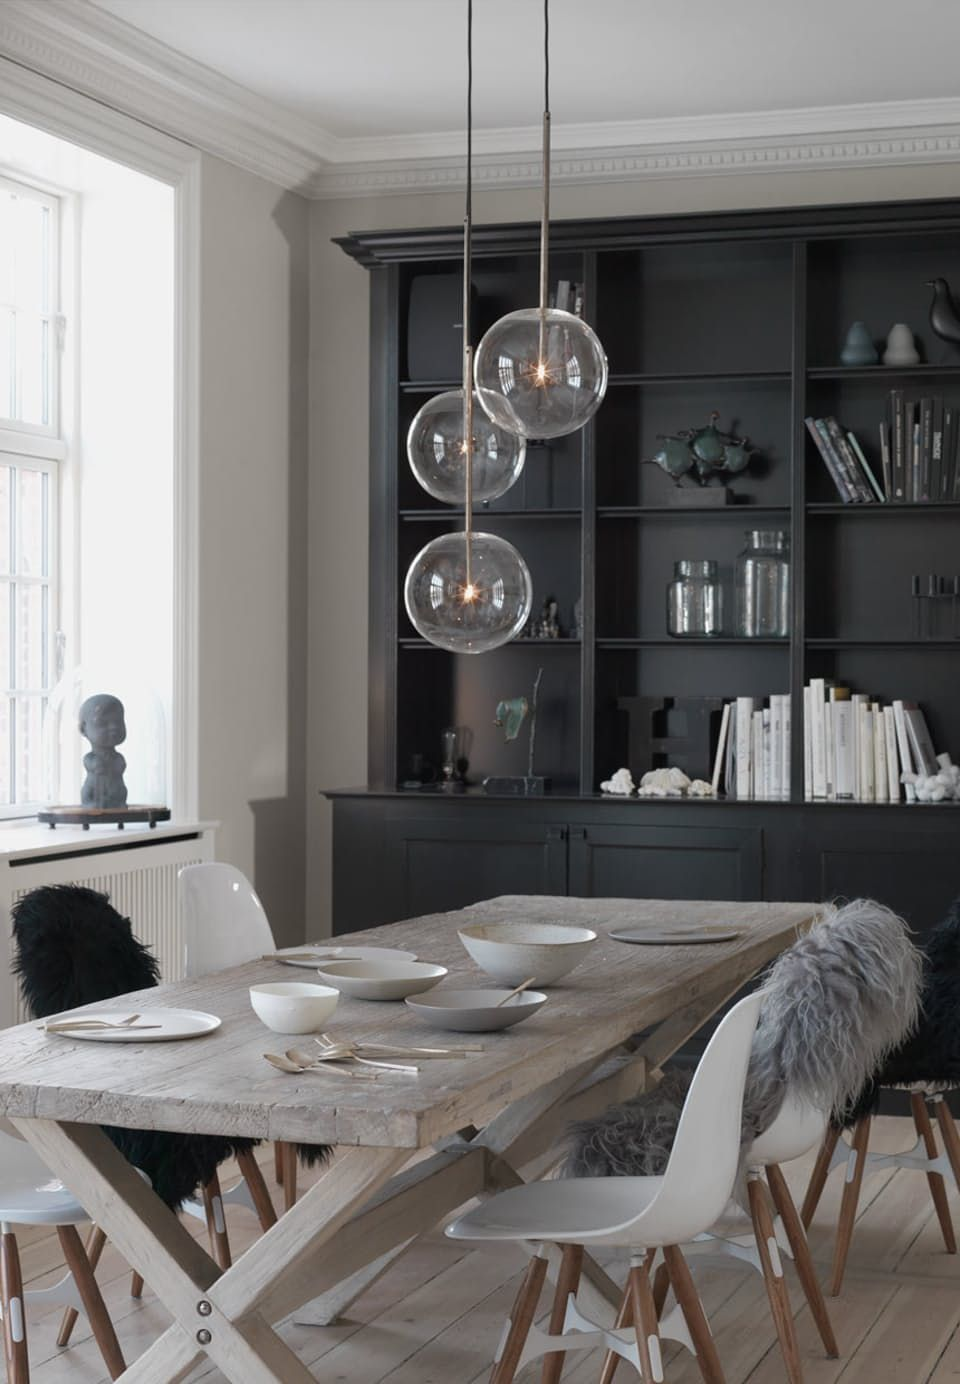 Scandinavian Dining Room Space In Neutral Tones Featuring A Rustic Fascinating Scandinavian Dining Room 2018